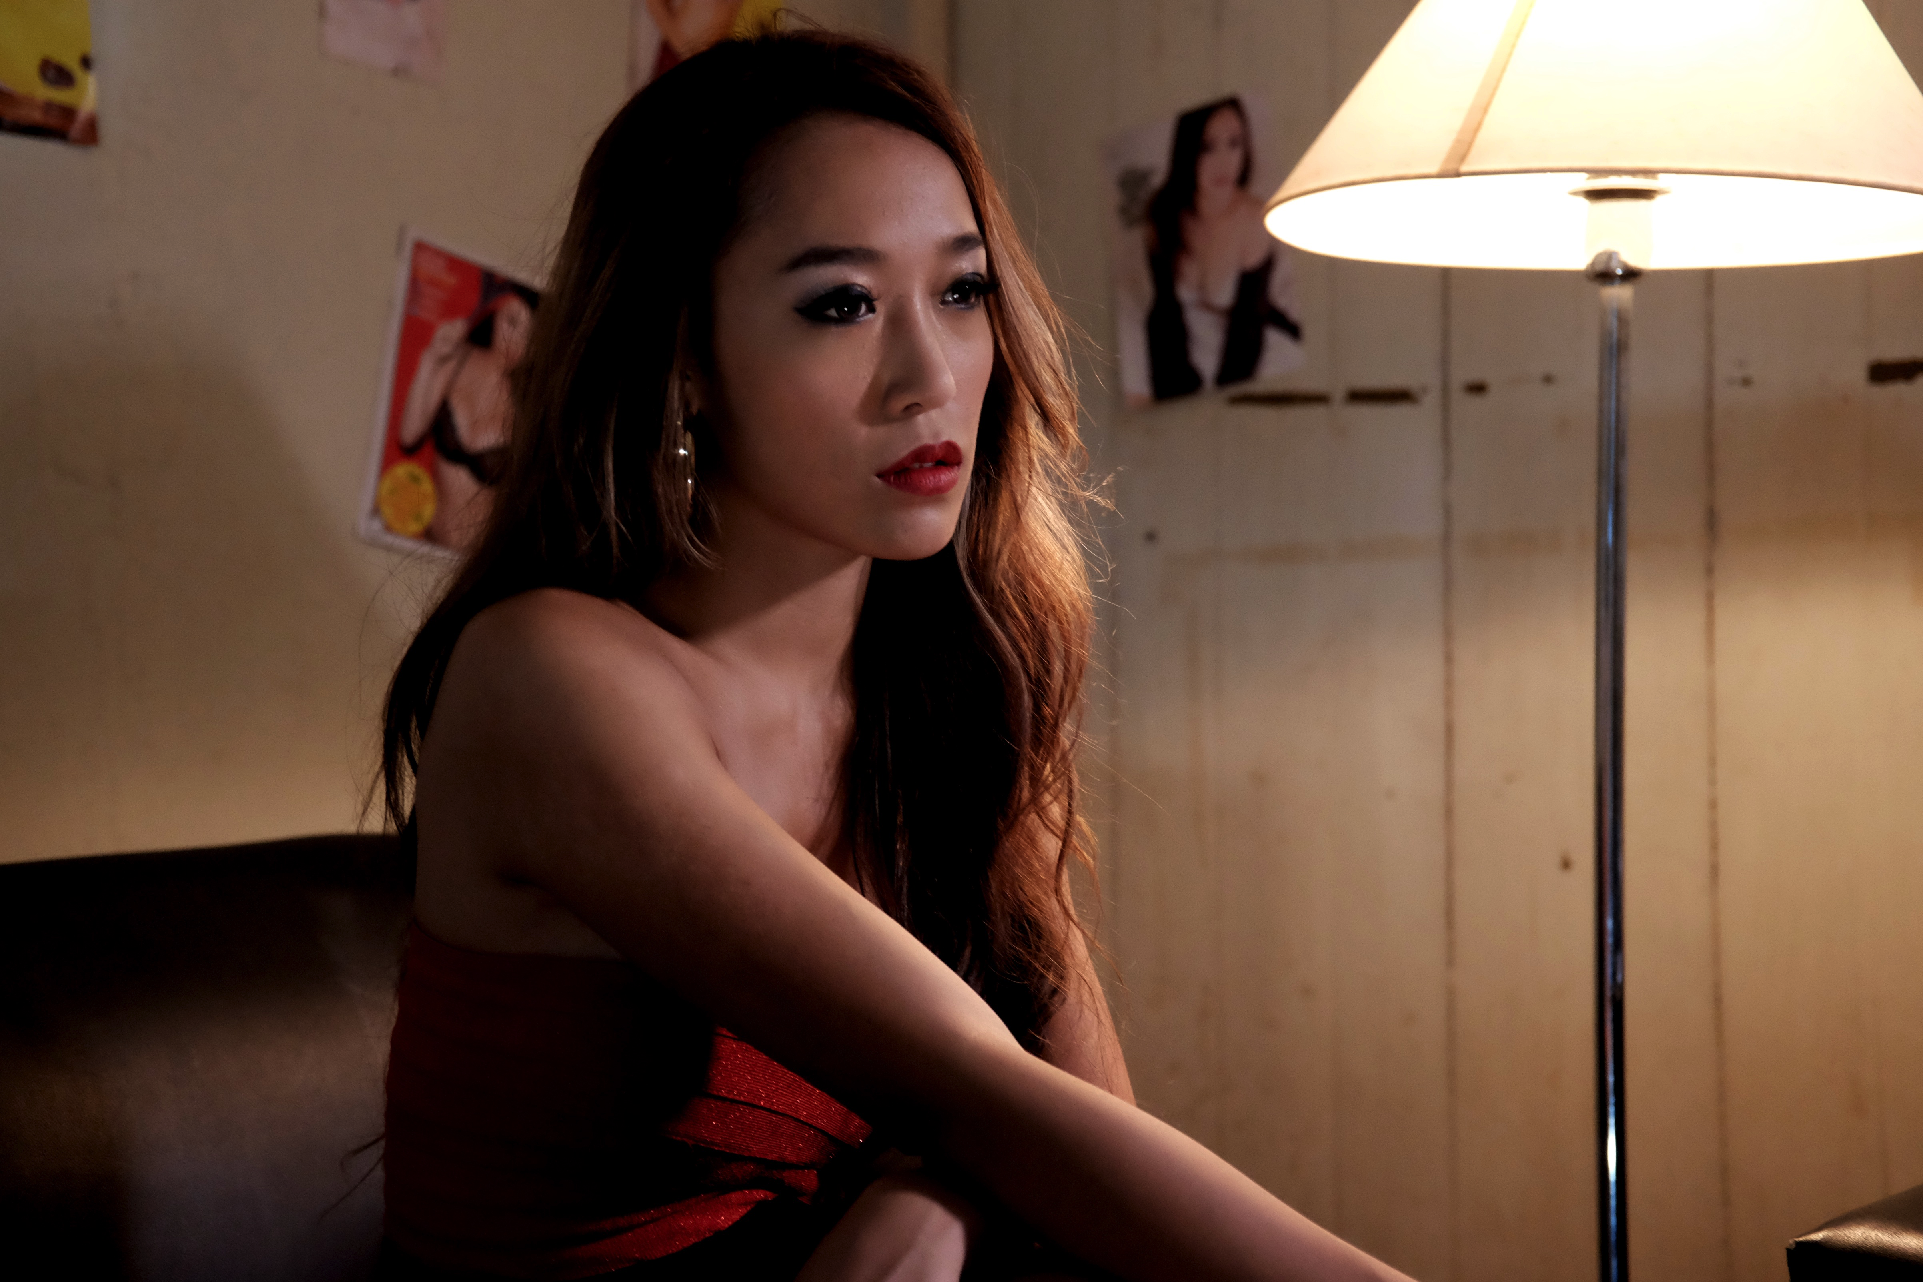 [Movie Review] 'Siew Lup' feels like an explicit Chinese